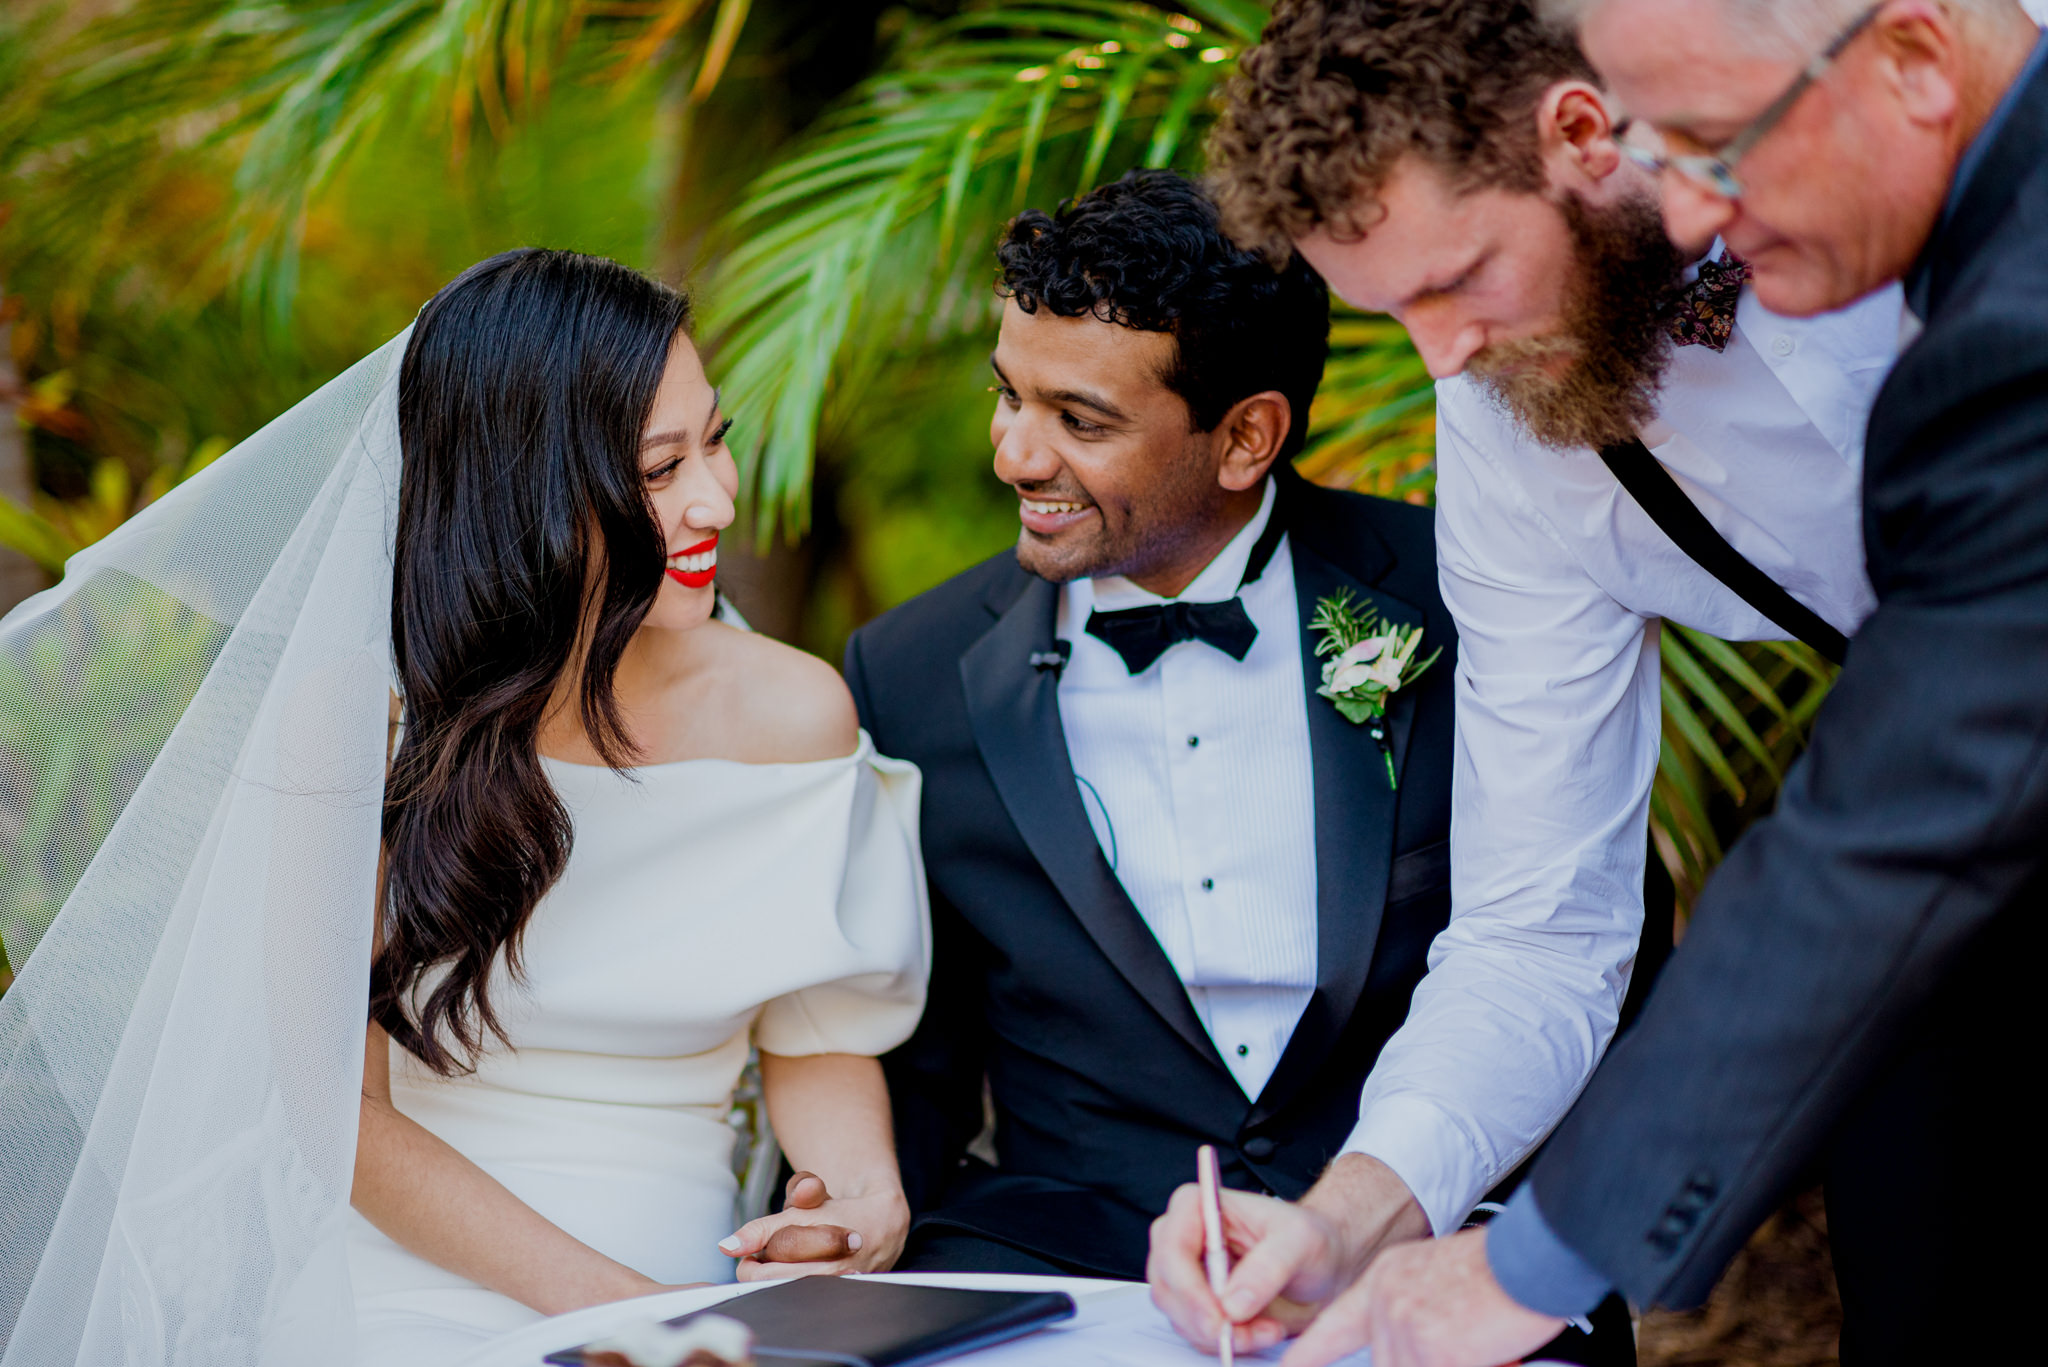 Bride and groom face each other and laugh as witness signs marriage certificate